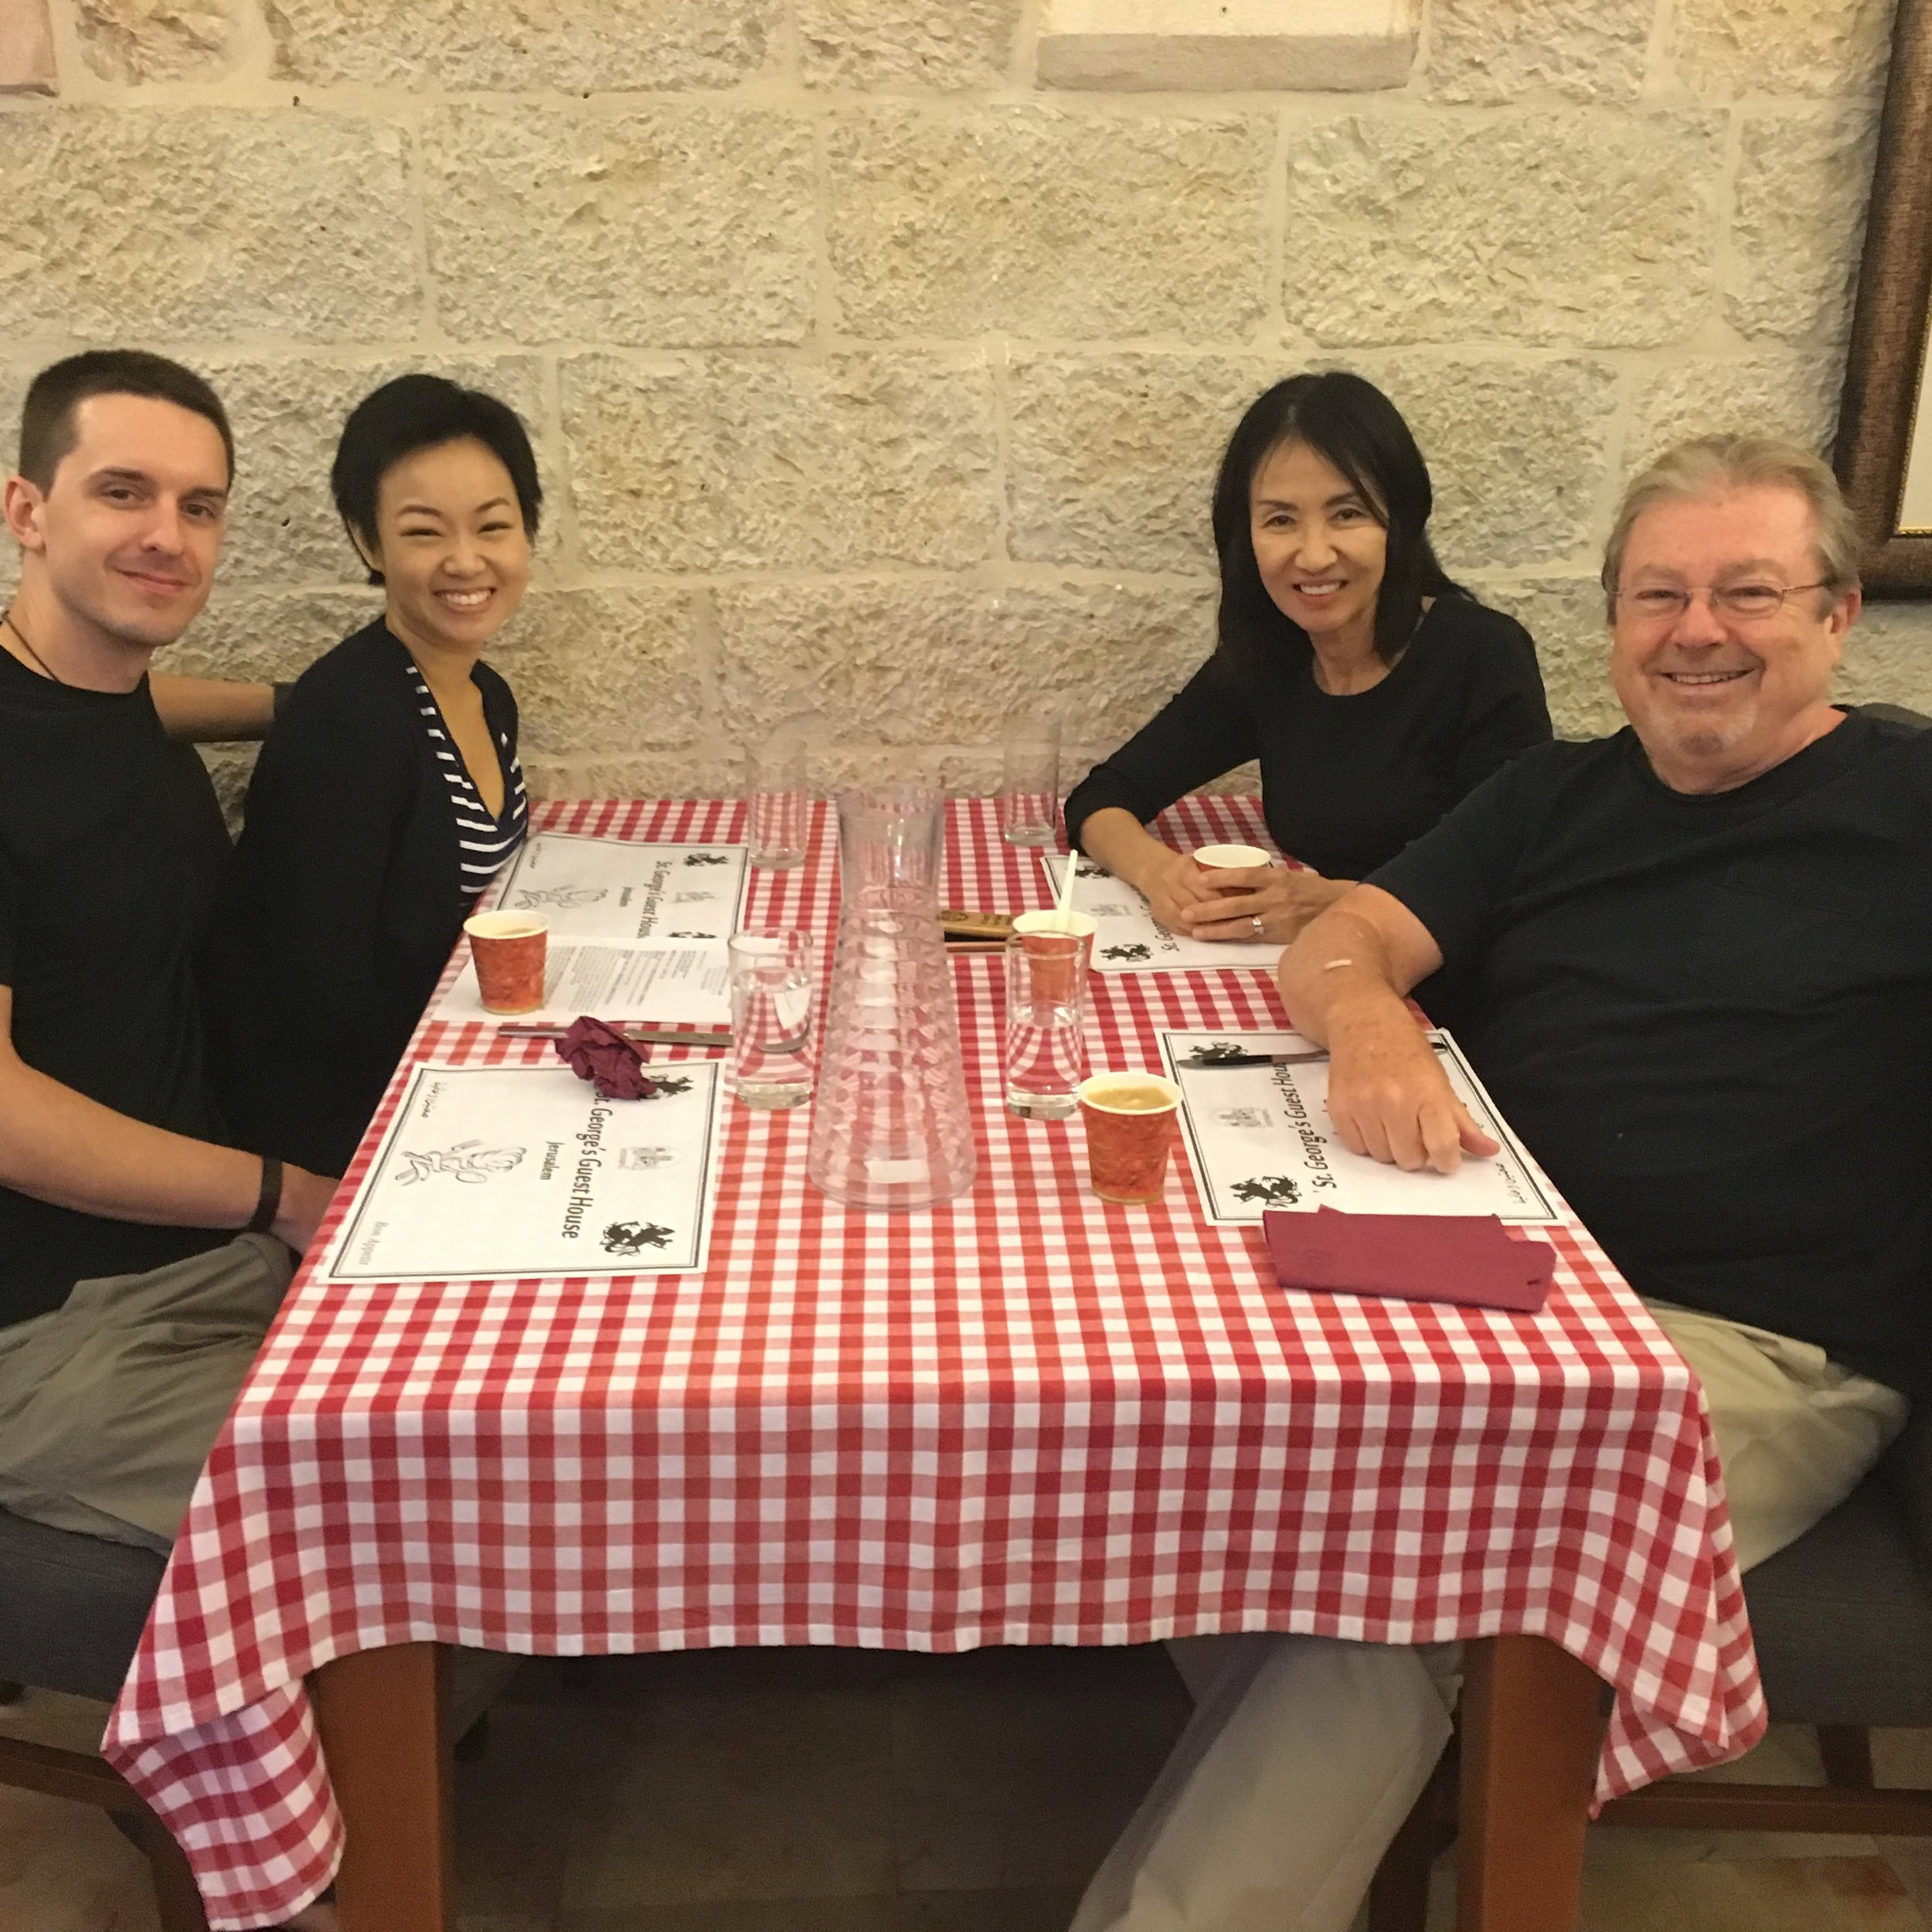 Karen with her family in Jerusalem at the Pilgrim Guest House of St. George's Anglican Cathedral